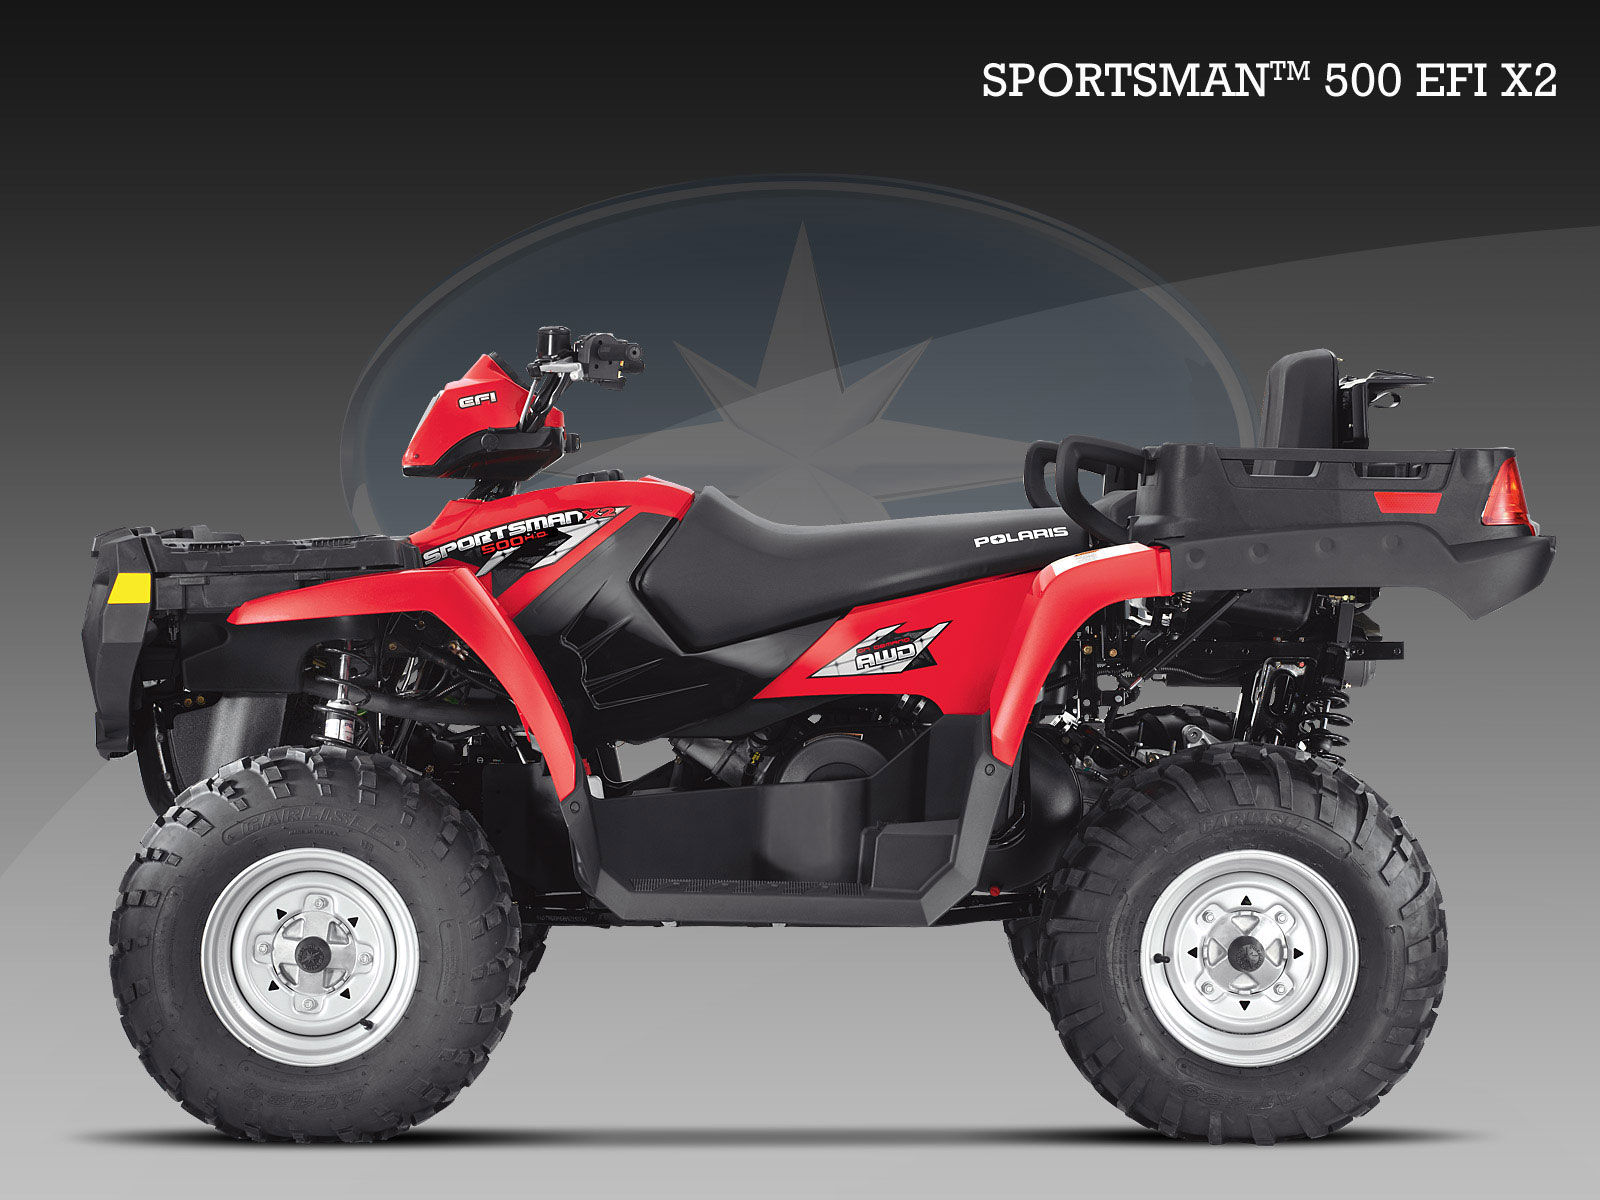 polaris sportsman 500 efi x2 specs 2008 2009. Black Bedroom Furniture Sets. Home Design Ideas